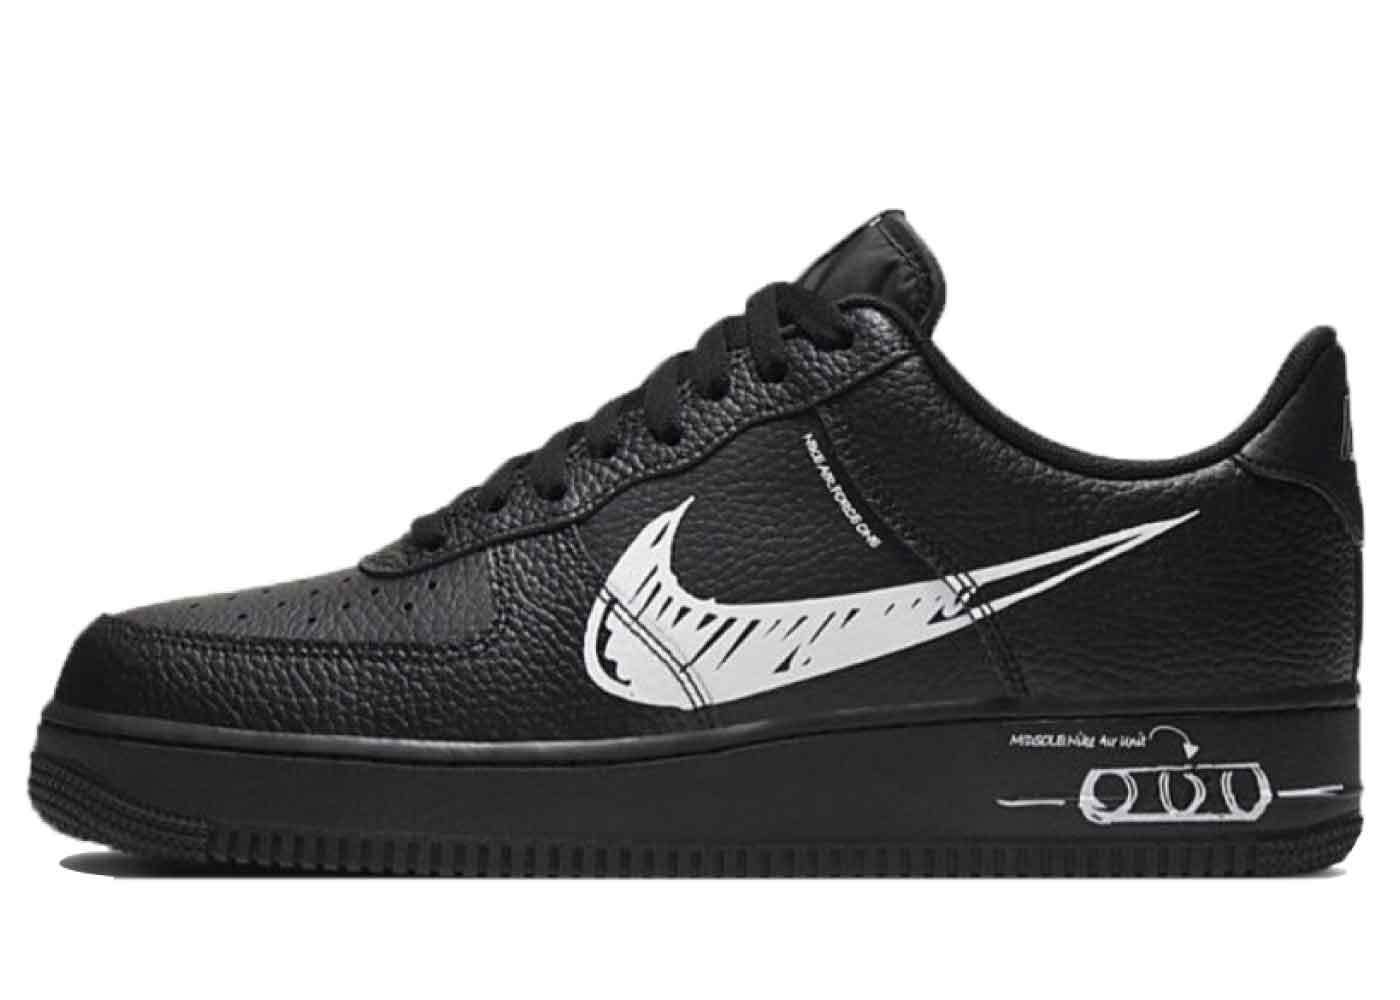 Nike Air Force 1 Low Utility Sketch Black Whiteの写真